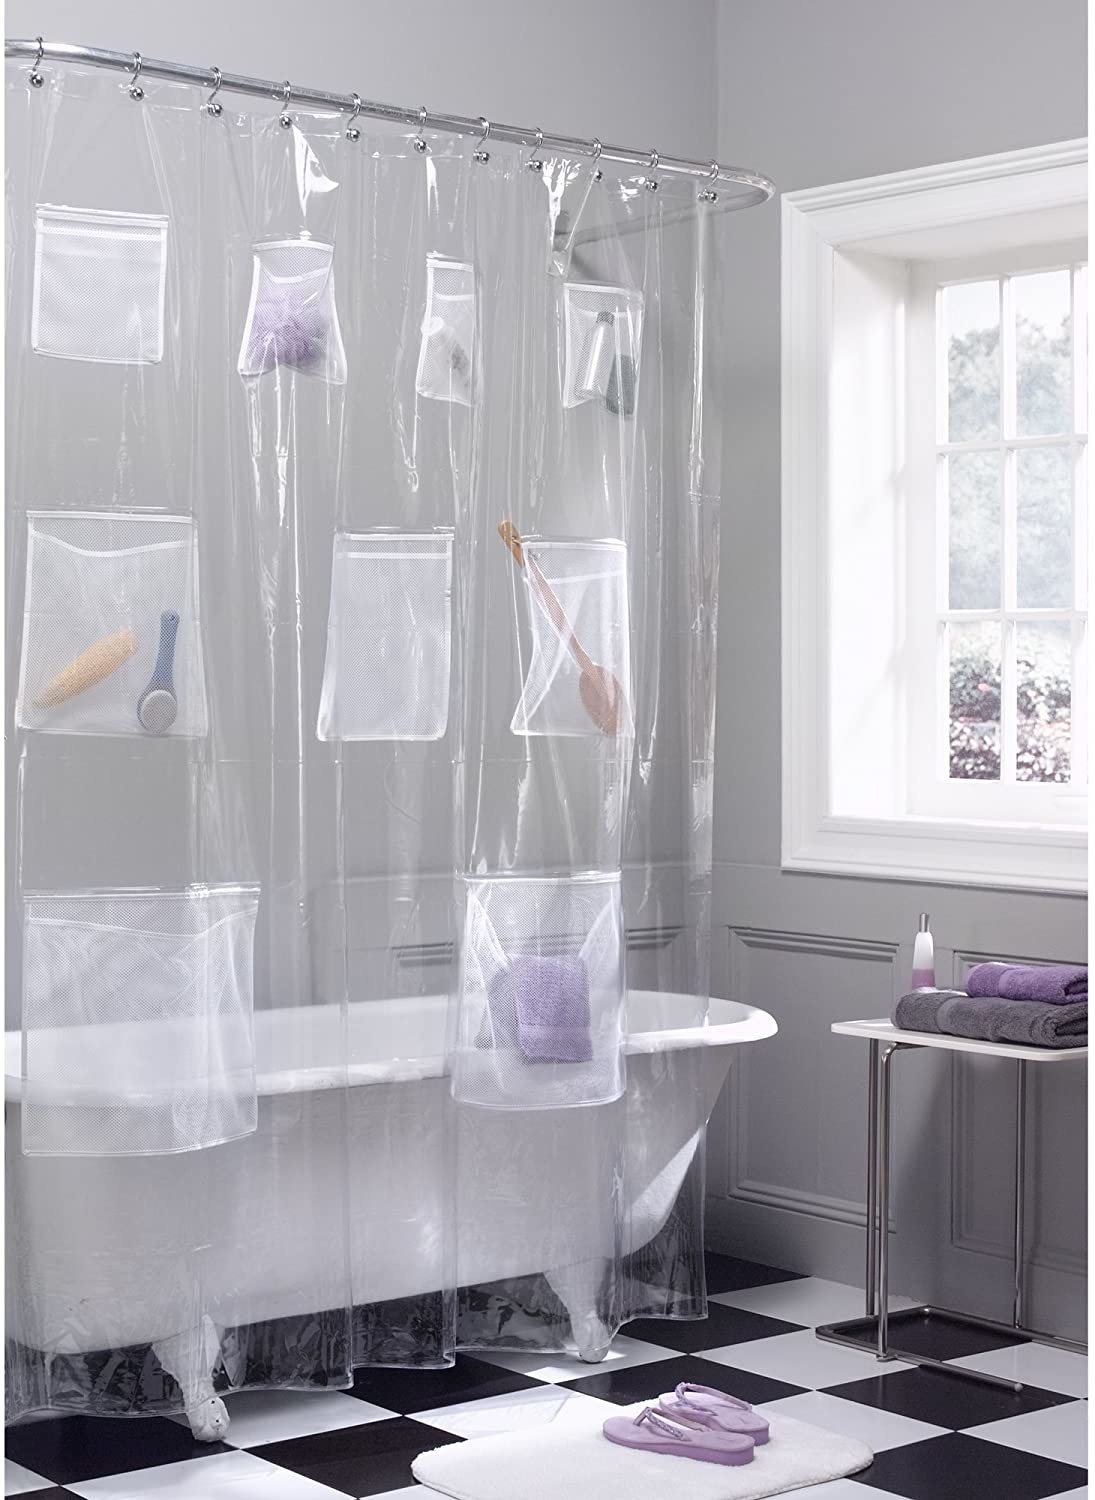 The clear curtain with nine pockets in different sizes